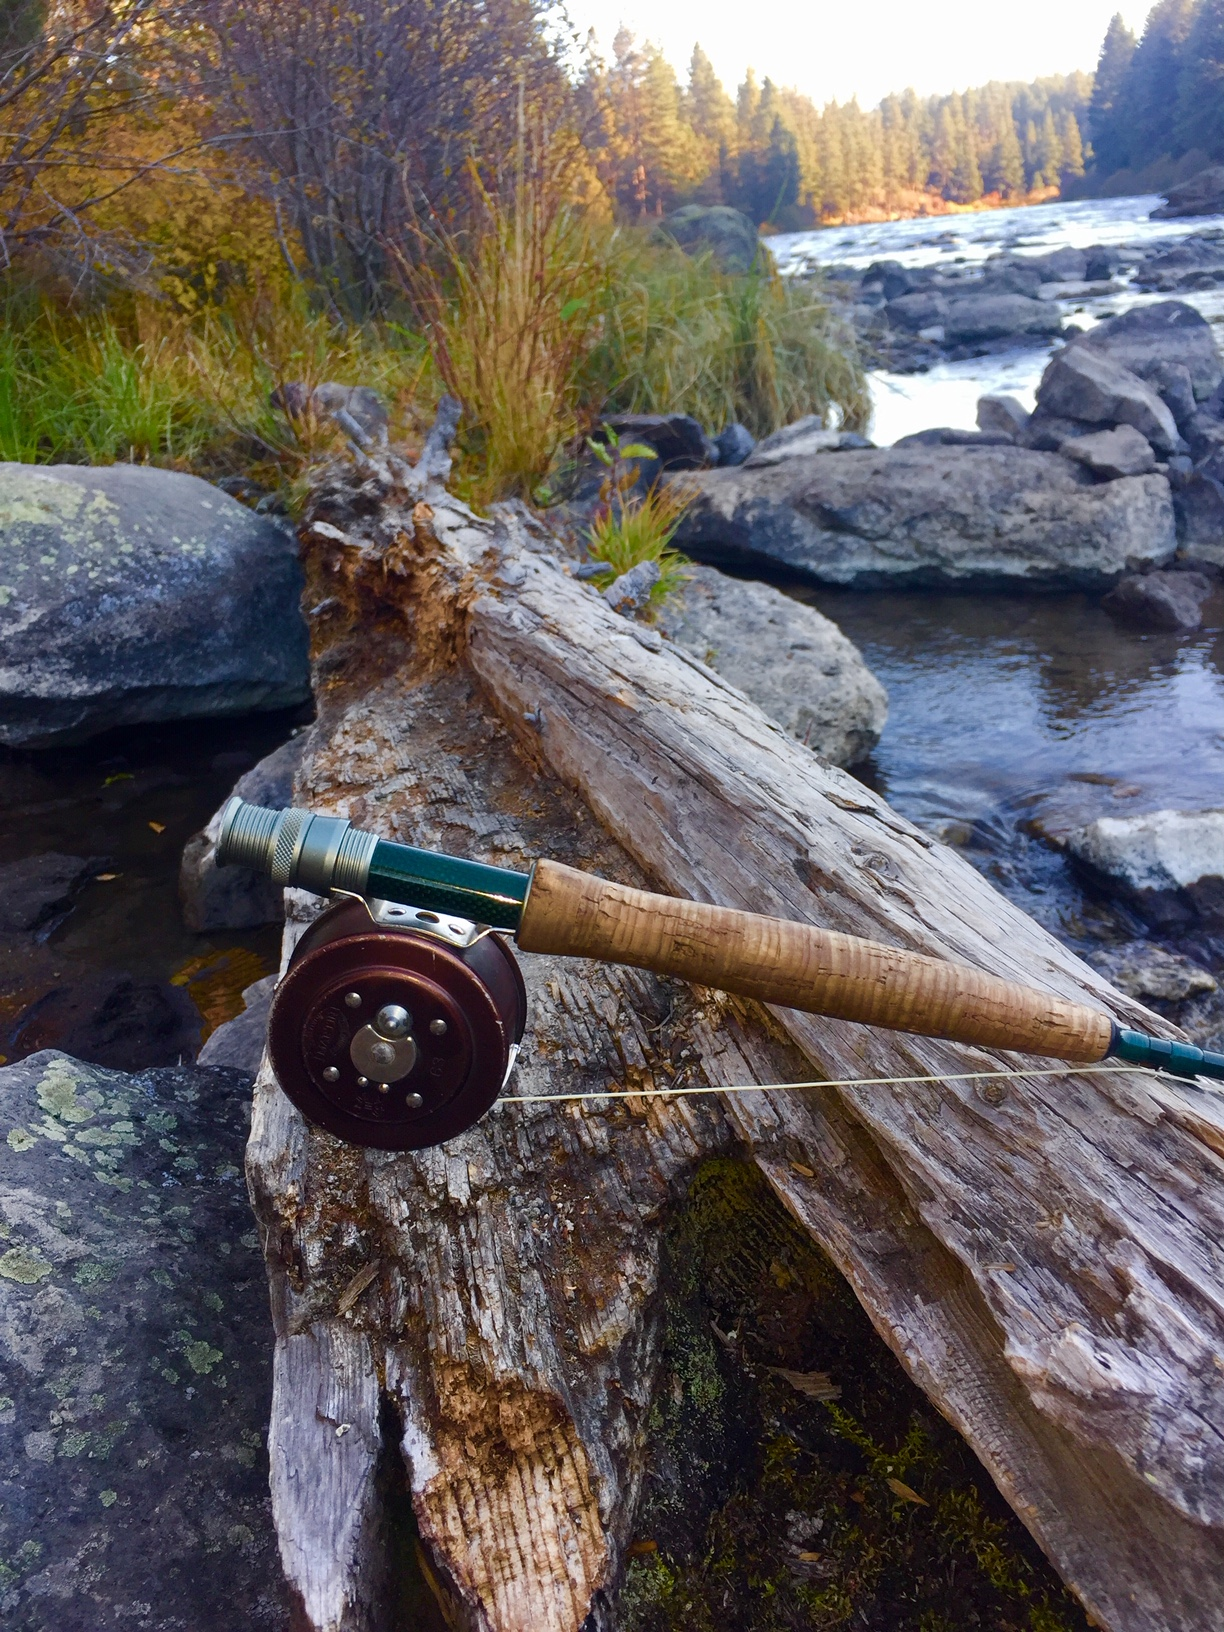 Fly fishing in Central Oregon